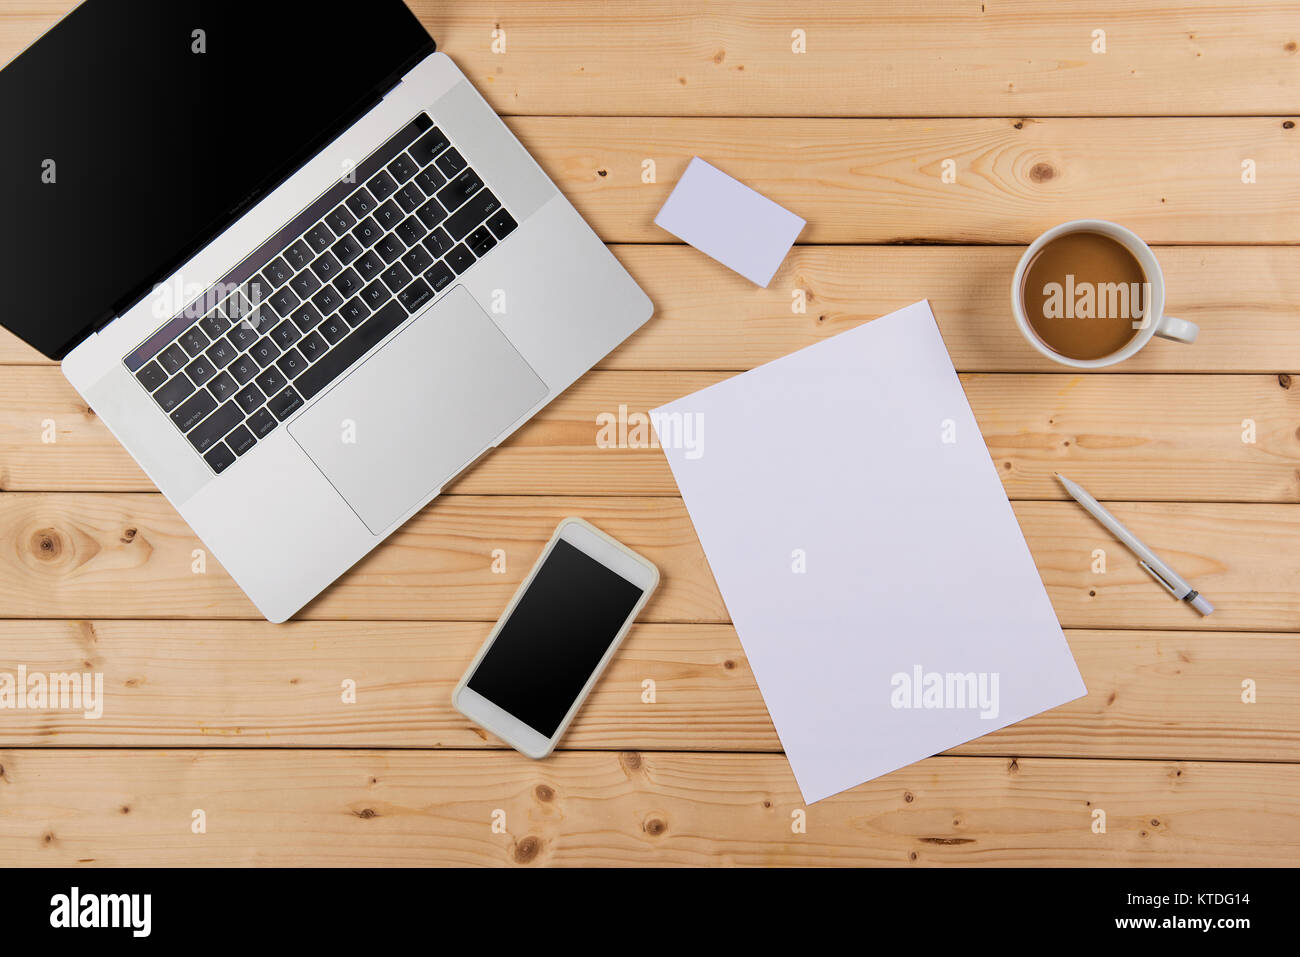 Working Place, Wooden Table. Top View Office Corporate Design Mockup  Template